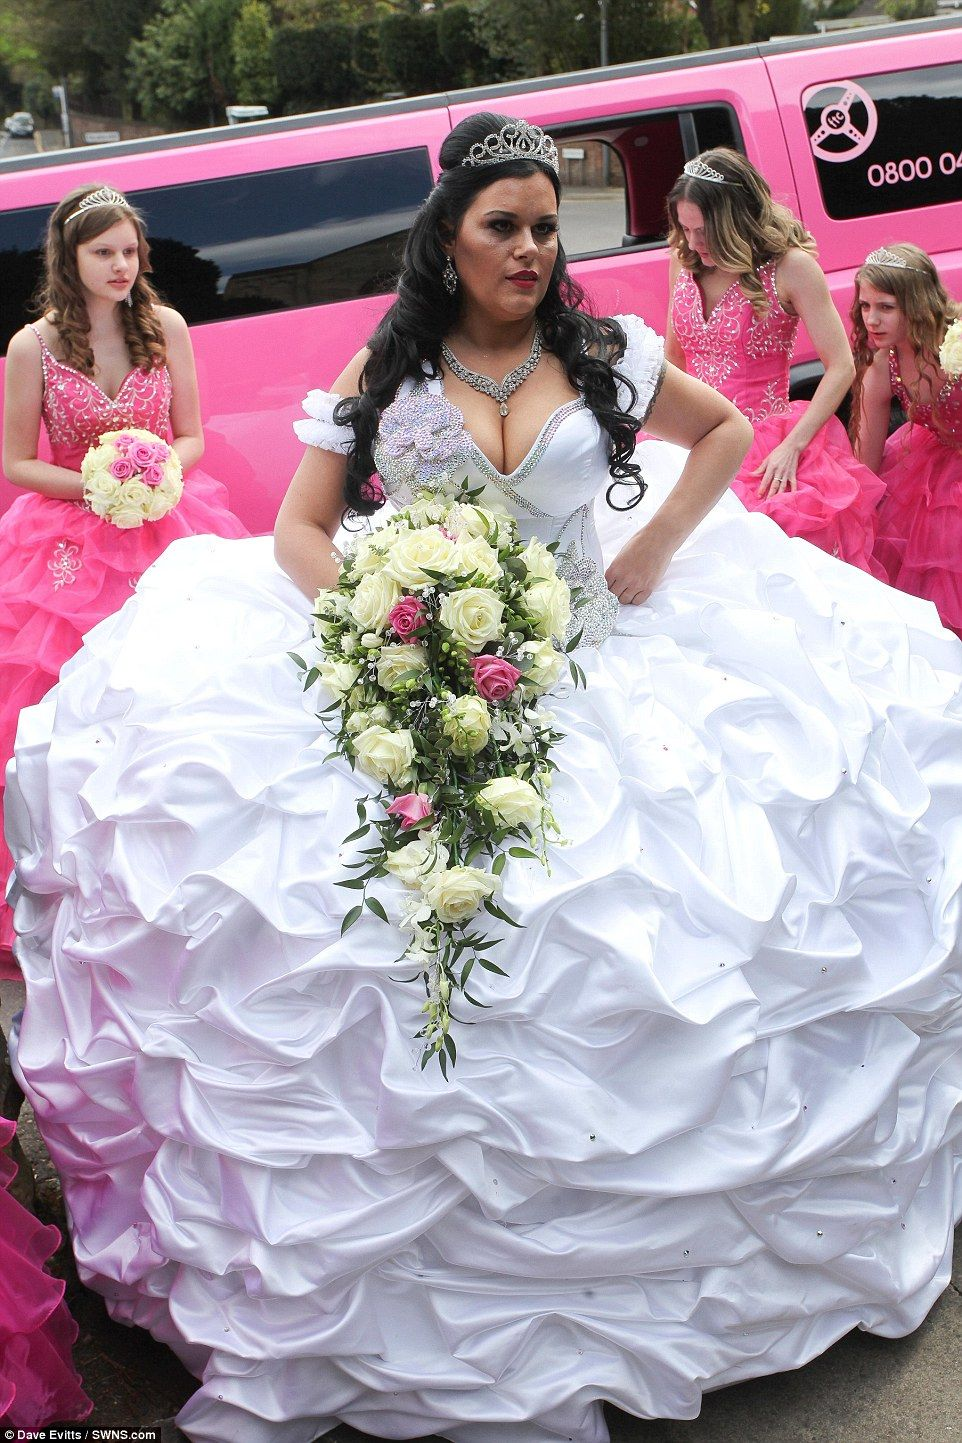 99+ How Much Do Gypsy Wedding Dresses Cost - Plus Size Dresses for ...